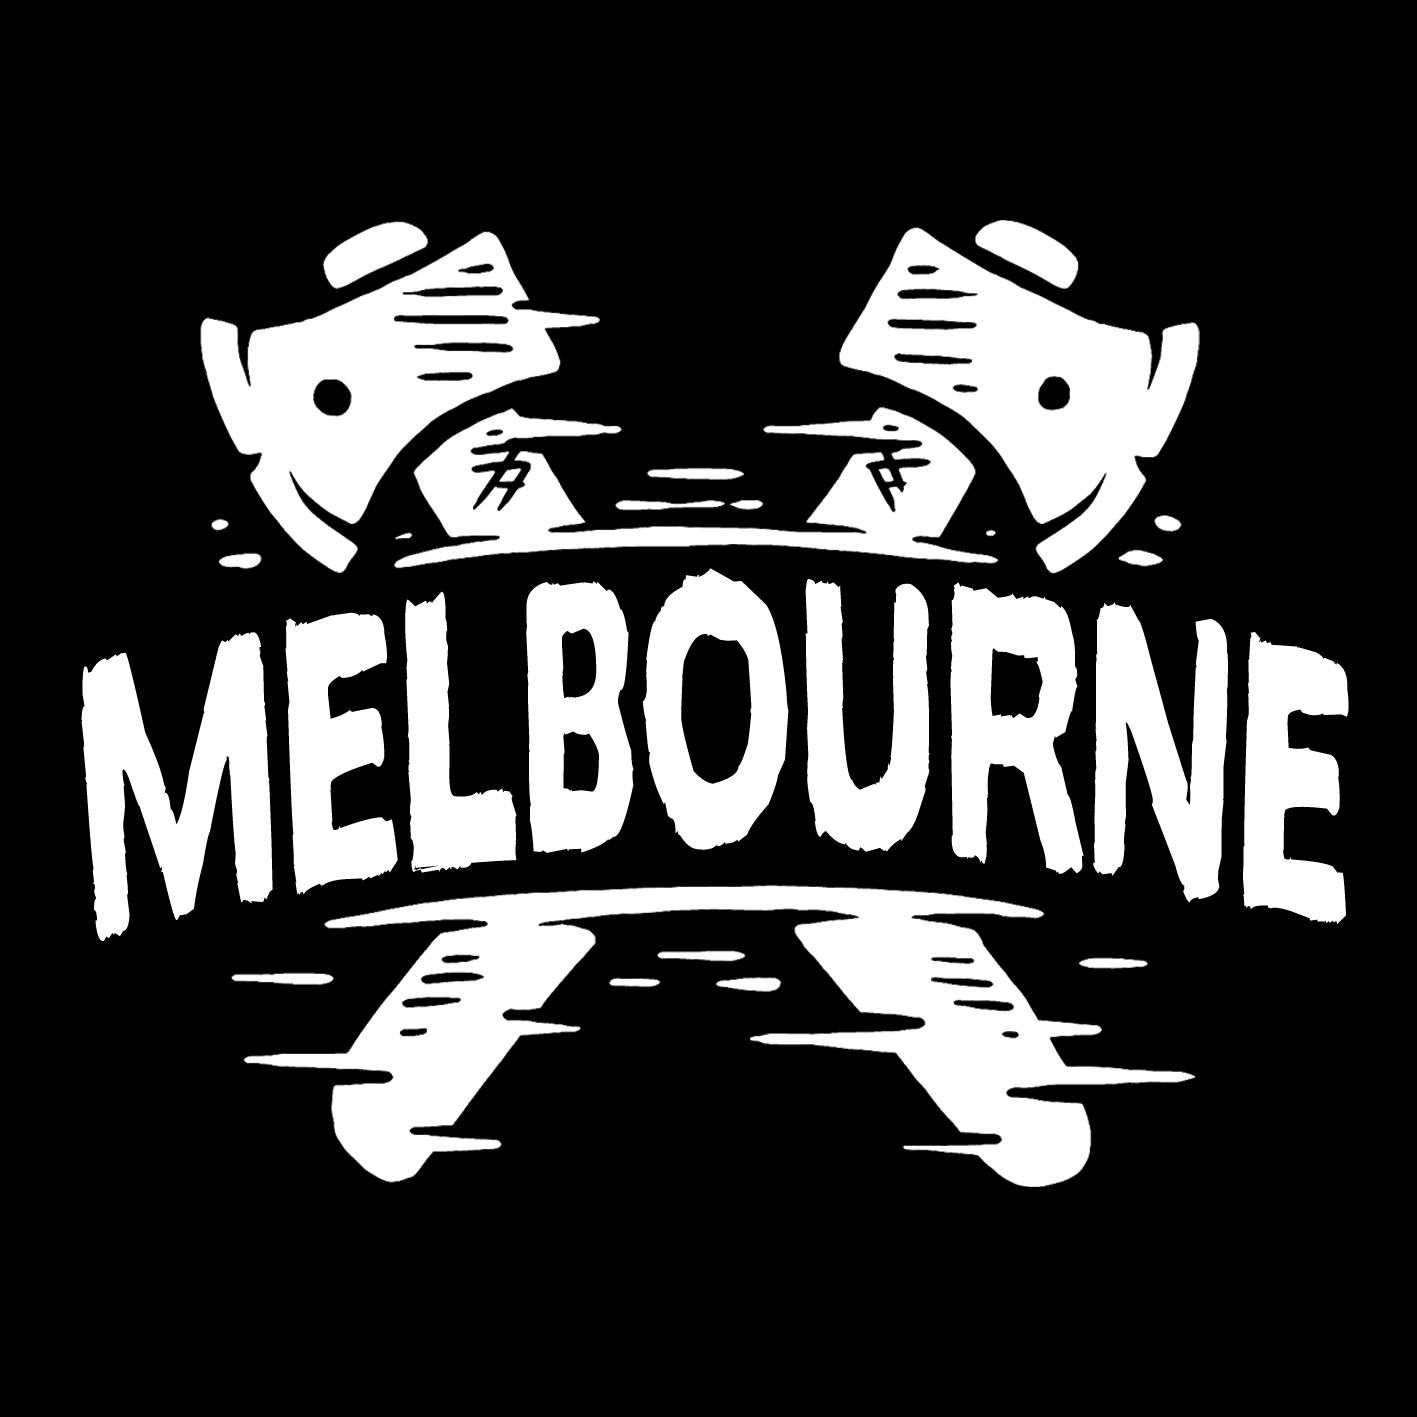 CLICK ABOVE TO PURCHASE GIFT CERTIFICATES FOR MELBOURNE AXE THROWING